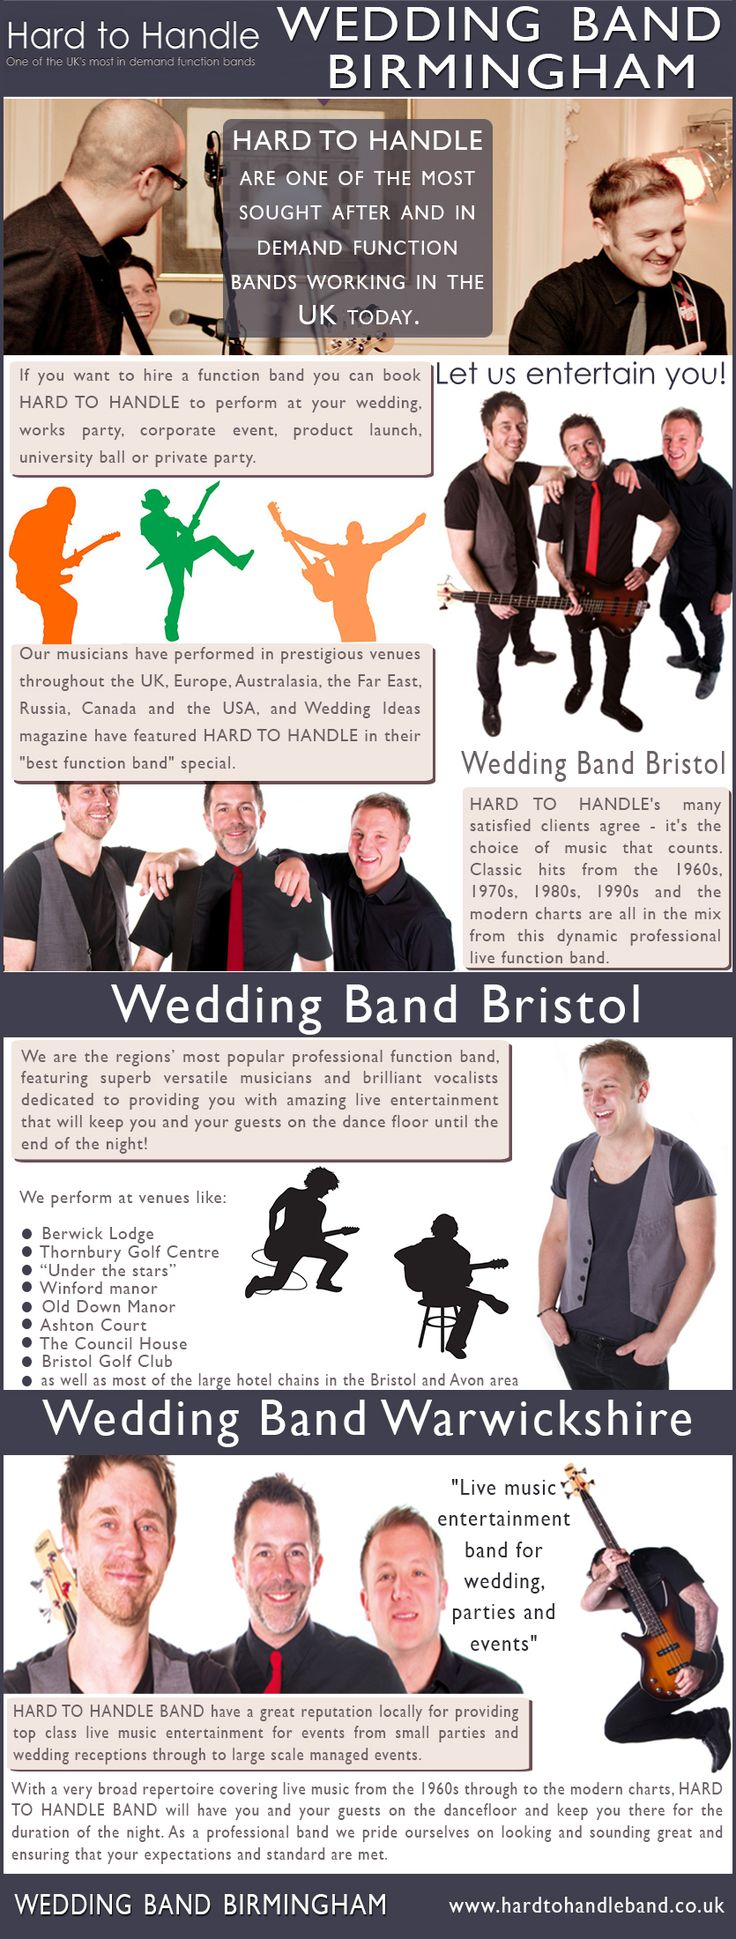 Visit our site http://www.hardtohandleband.co.uk/ for more information on Wedding Band Birmingham. Undoubtedly, music plays an important part in our lives and it becomes a key factor during our wedding ceremony and reception. Tasteful, melodious, theme-appropriate wedding music goes hand in hand with fabulous colors and amazing decorations, creating a unique, unforgettable ambiance. Wedding band Birmingham is a popular choice in wedding music nowadays.